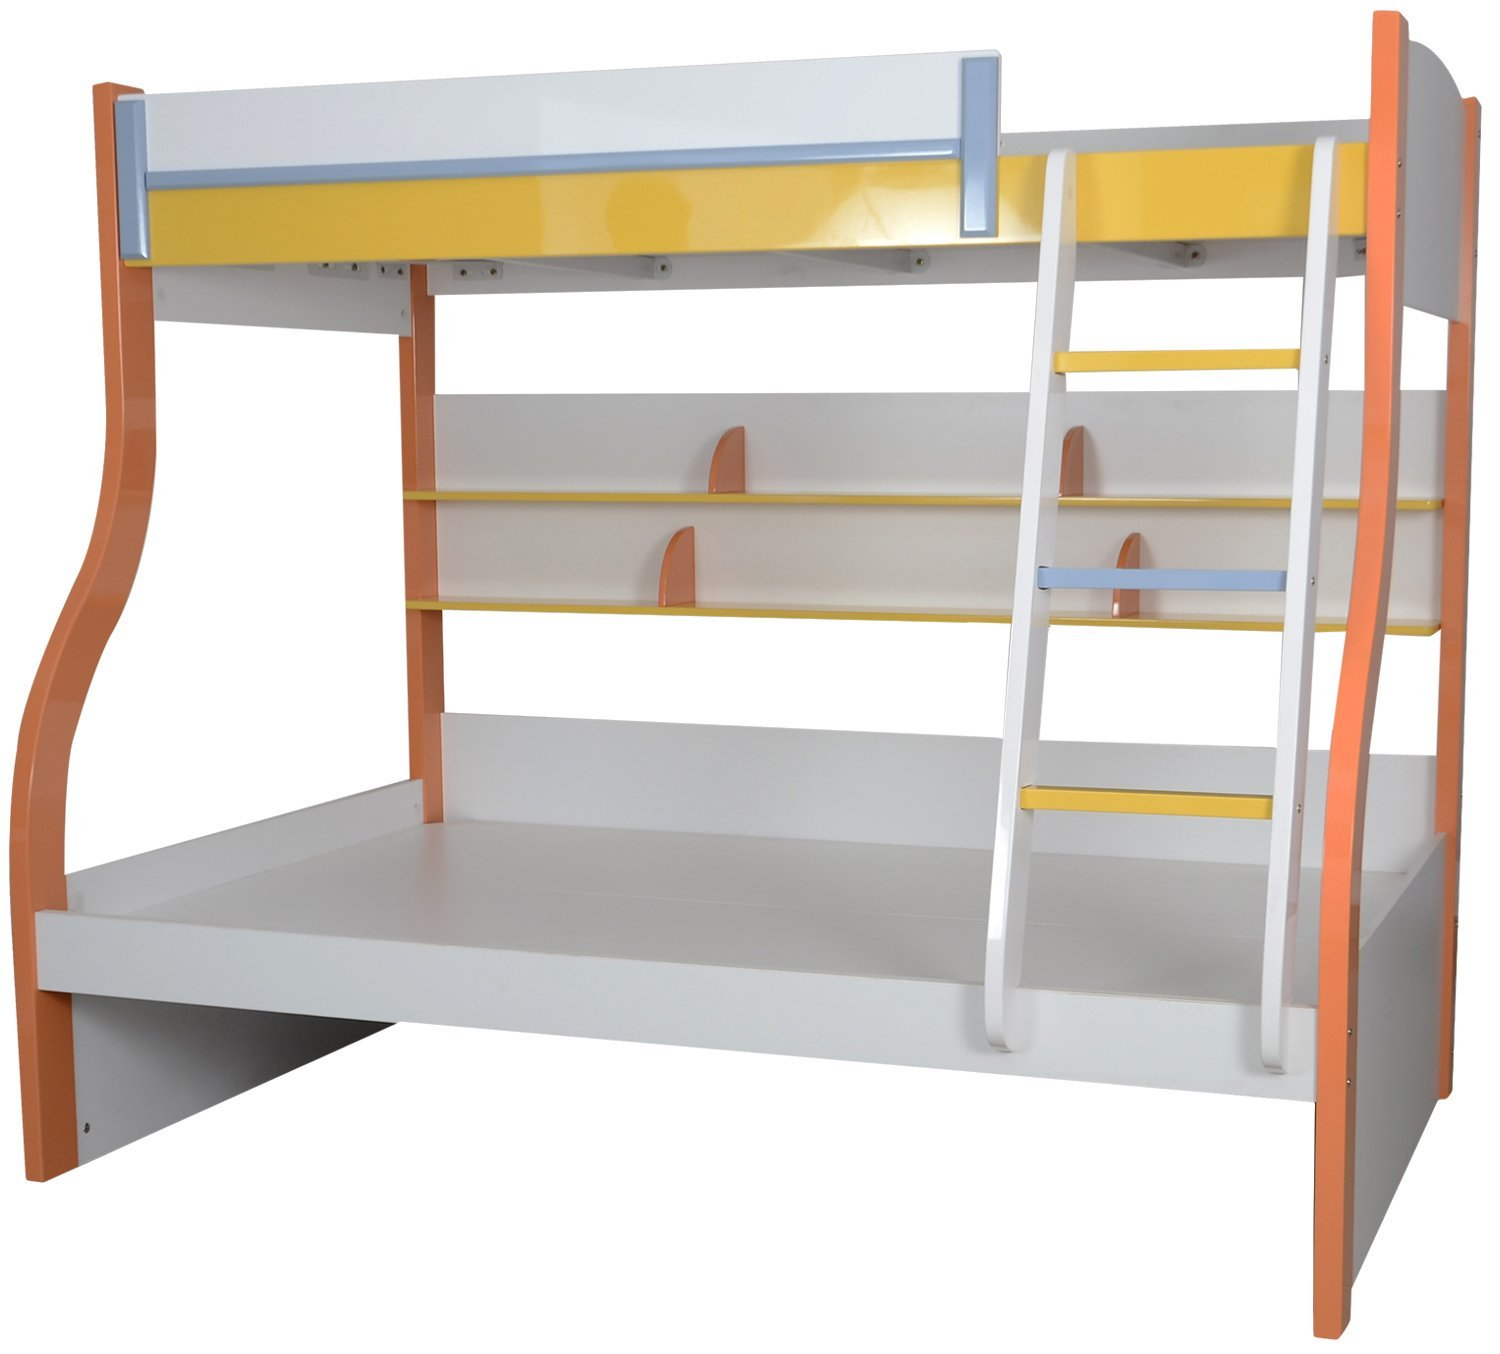 100 second hand bunk beds in bangalore buy and sell for Second hand bunk beds